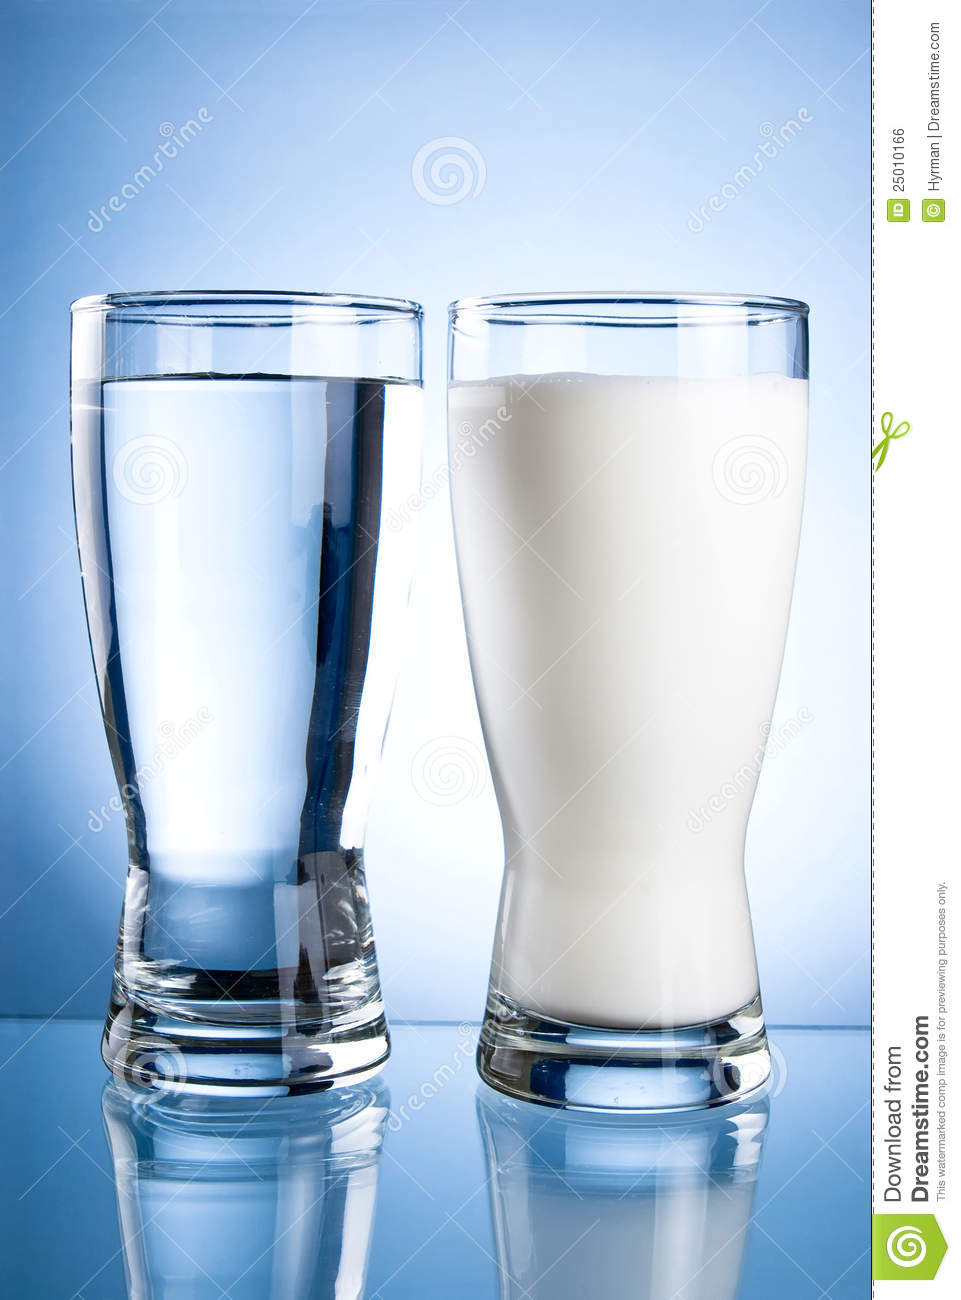 Glass Of Water And Milk On A Blue Royalty Free Stock Image